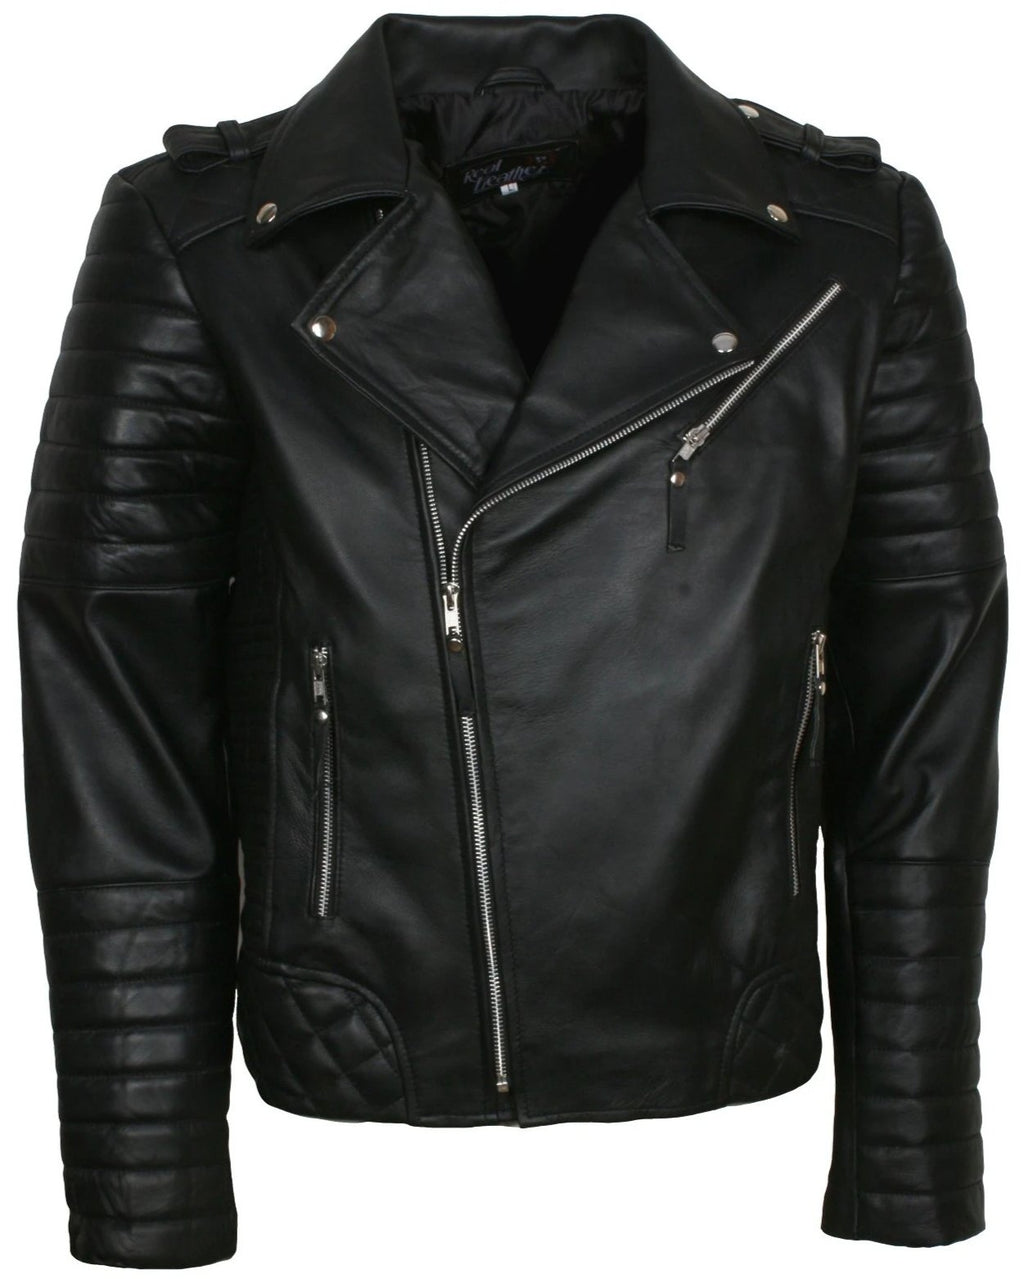 Black Boda Motorcycle Jacket Mens